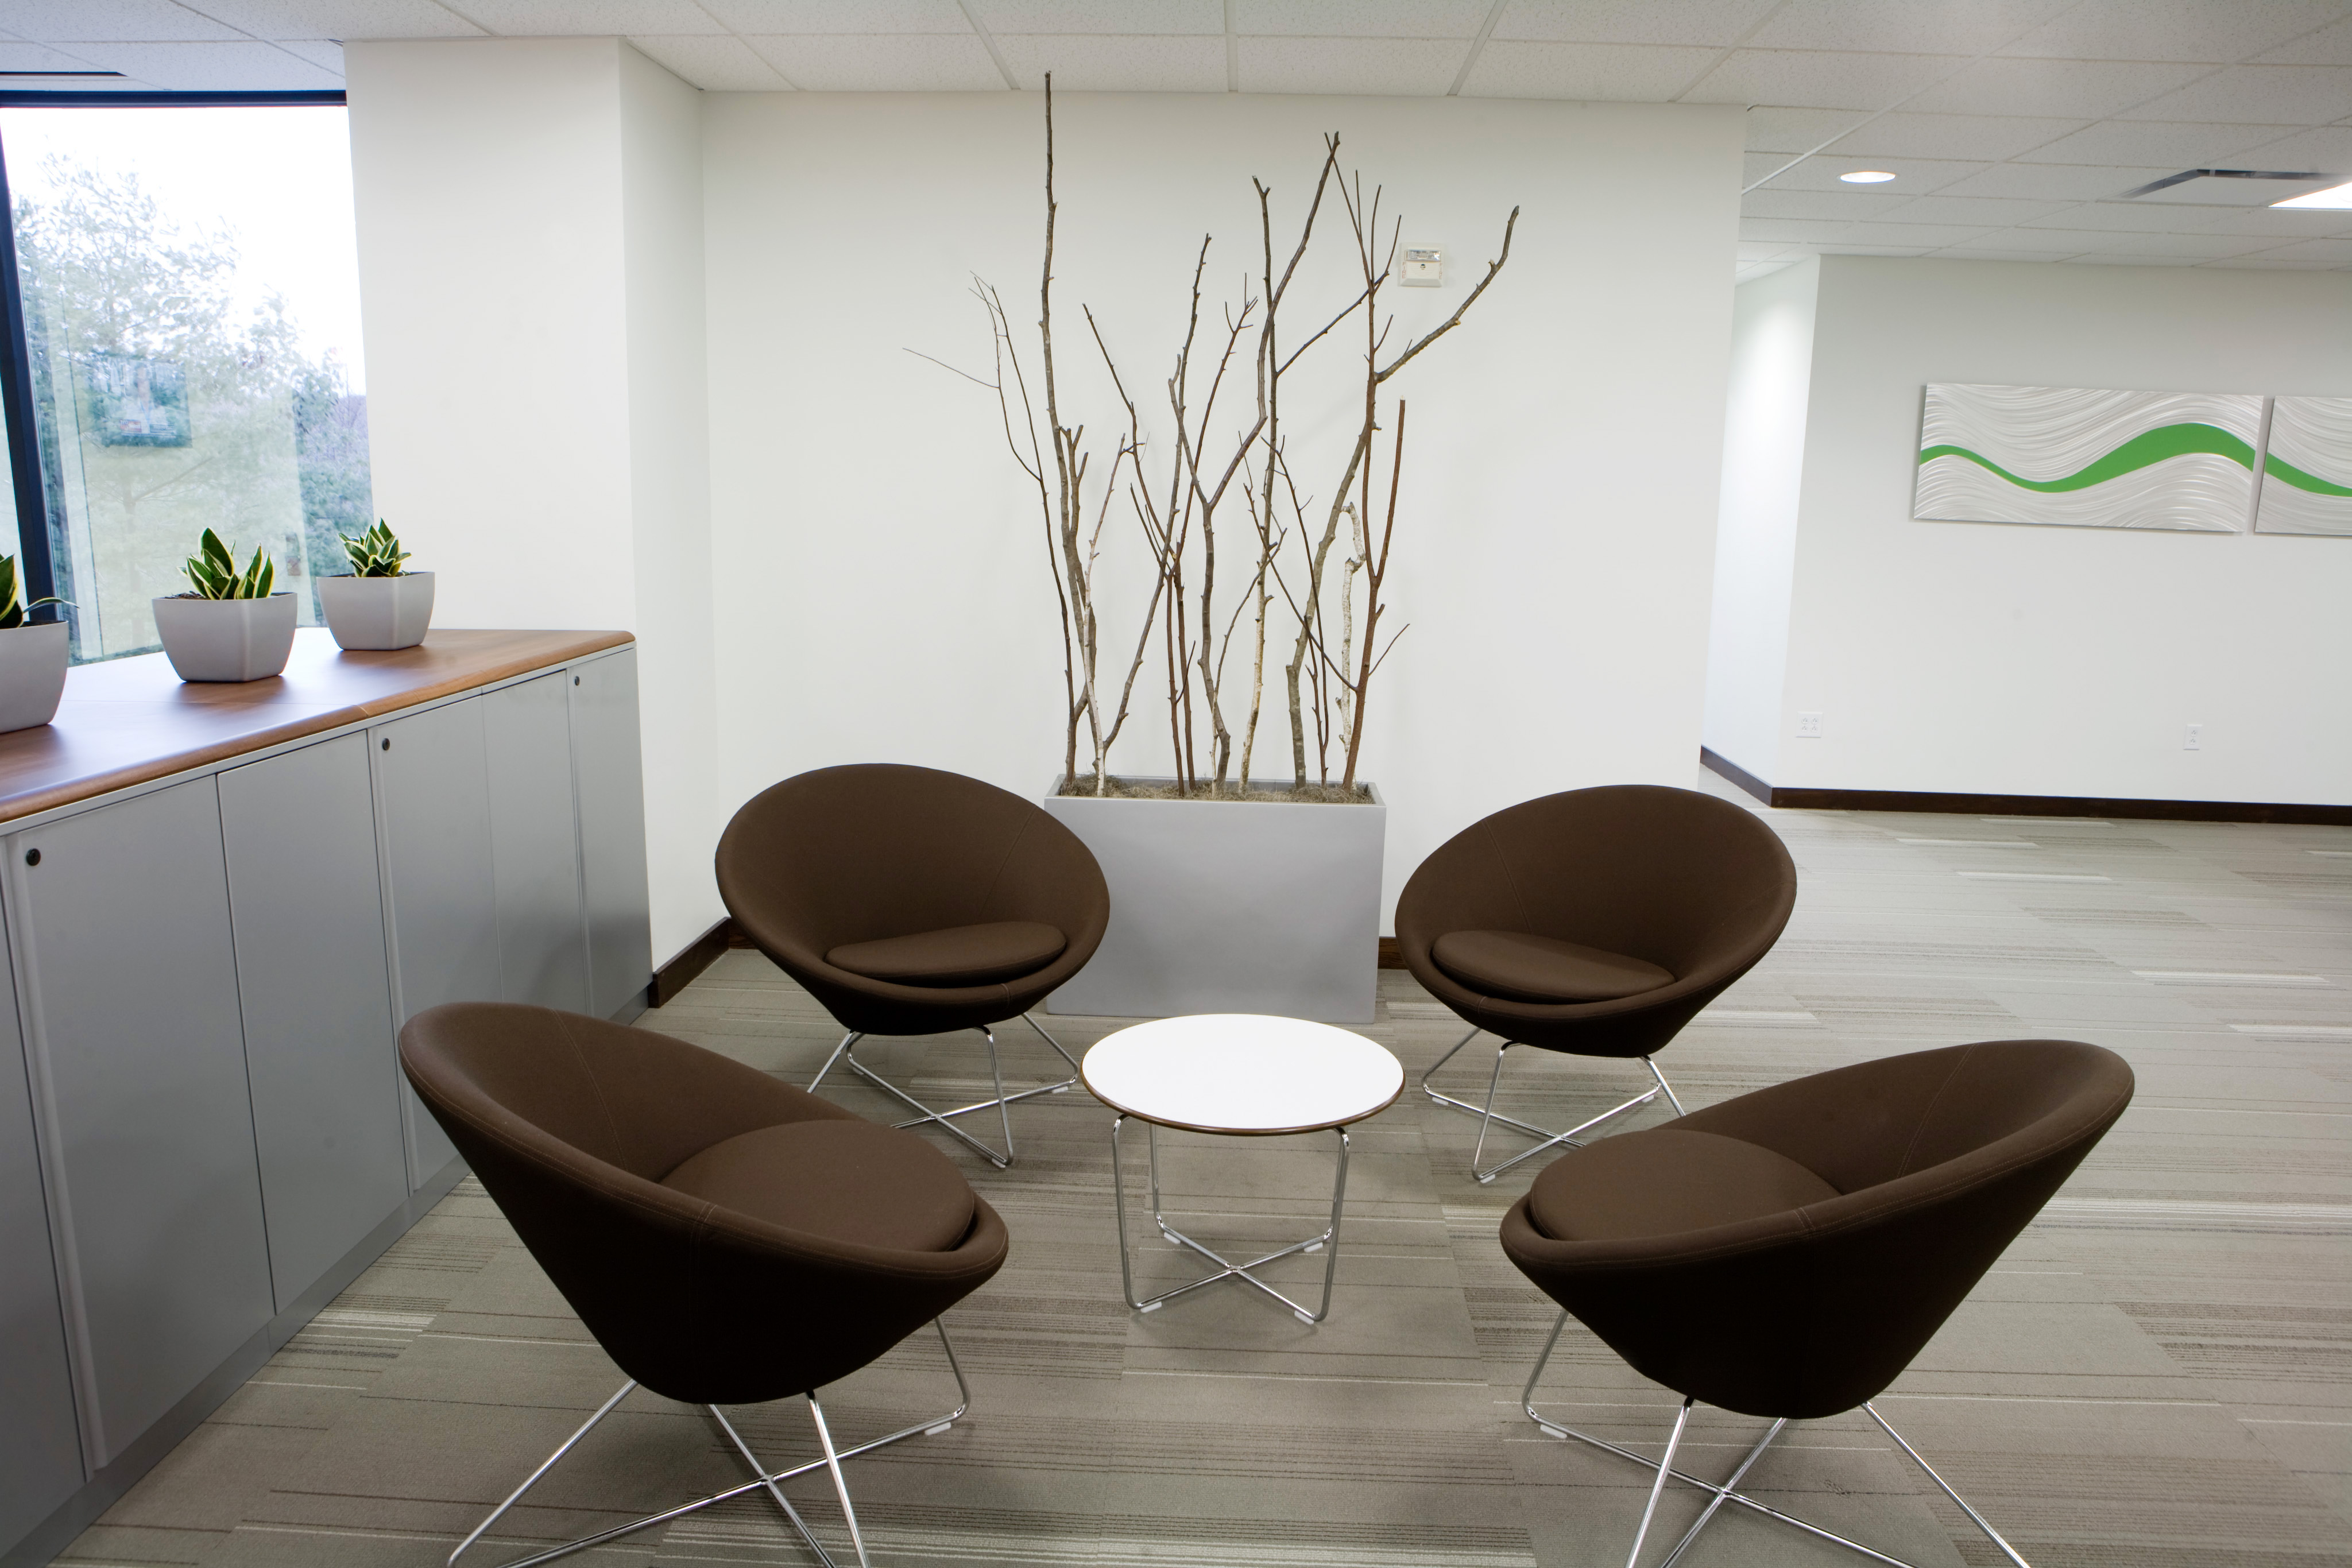 must have checklist for hosting office guests and clients